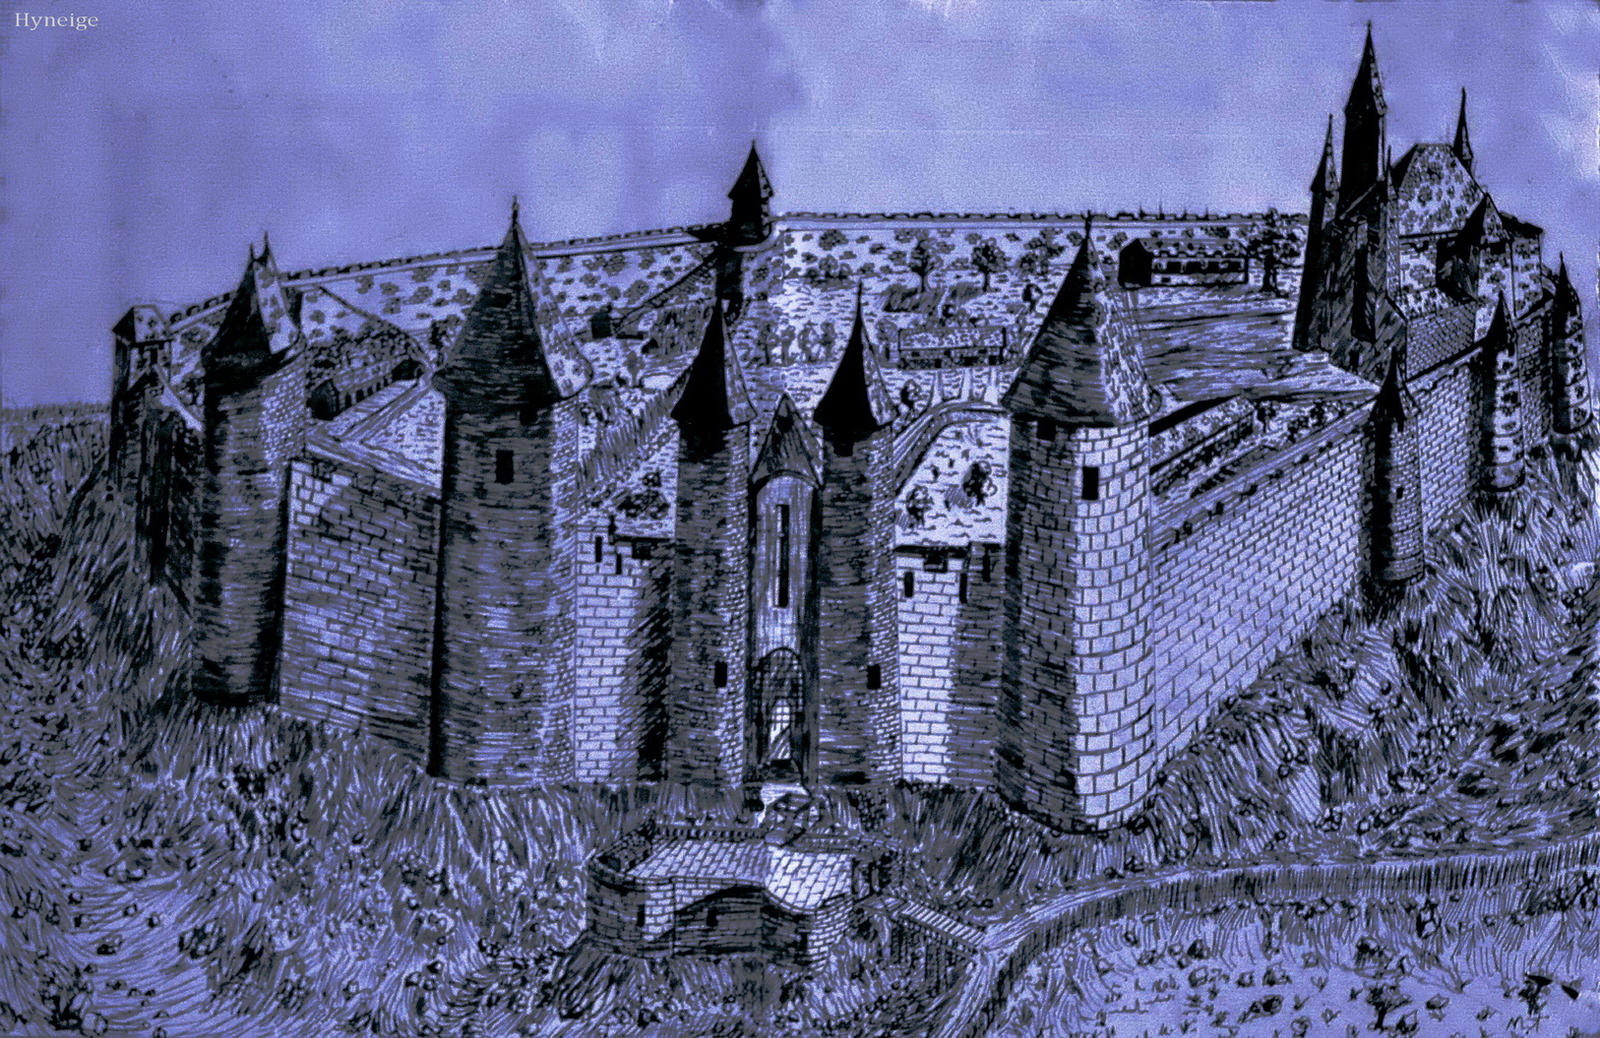 Dessin d 39 un chateau fort by hyneige on deviantart - Dessin d un chateau fort ...